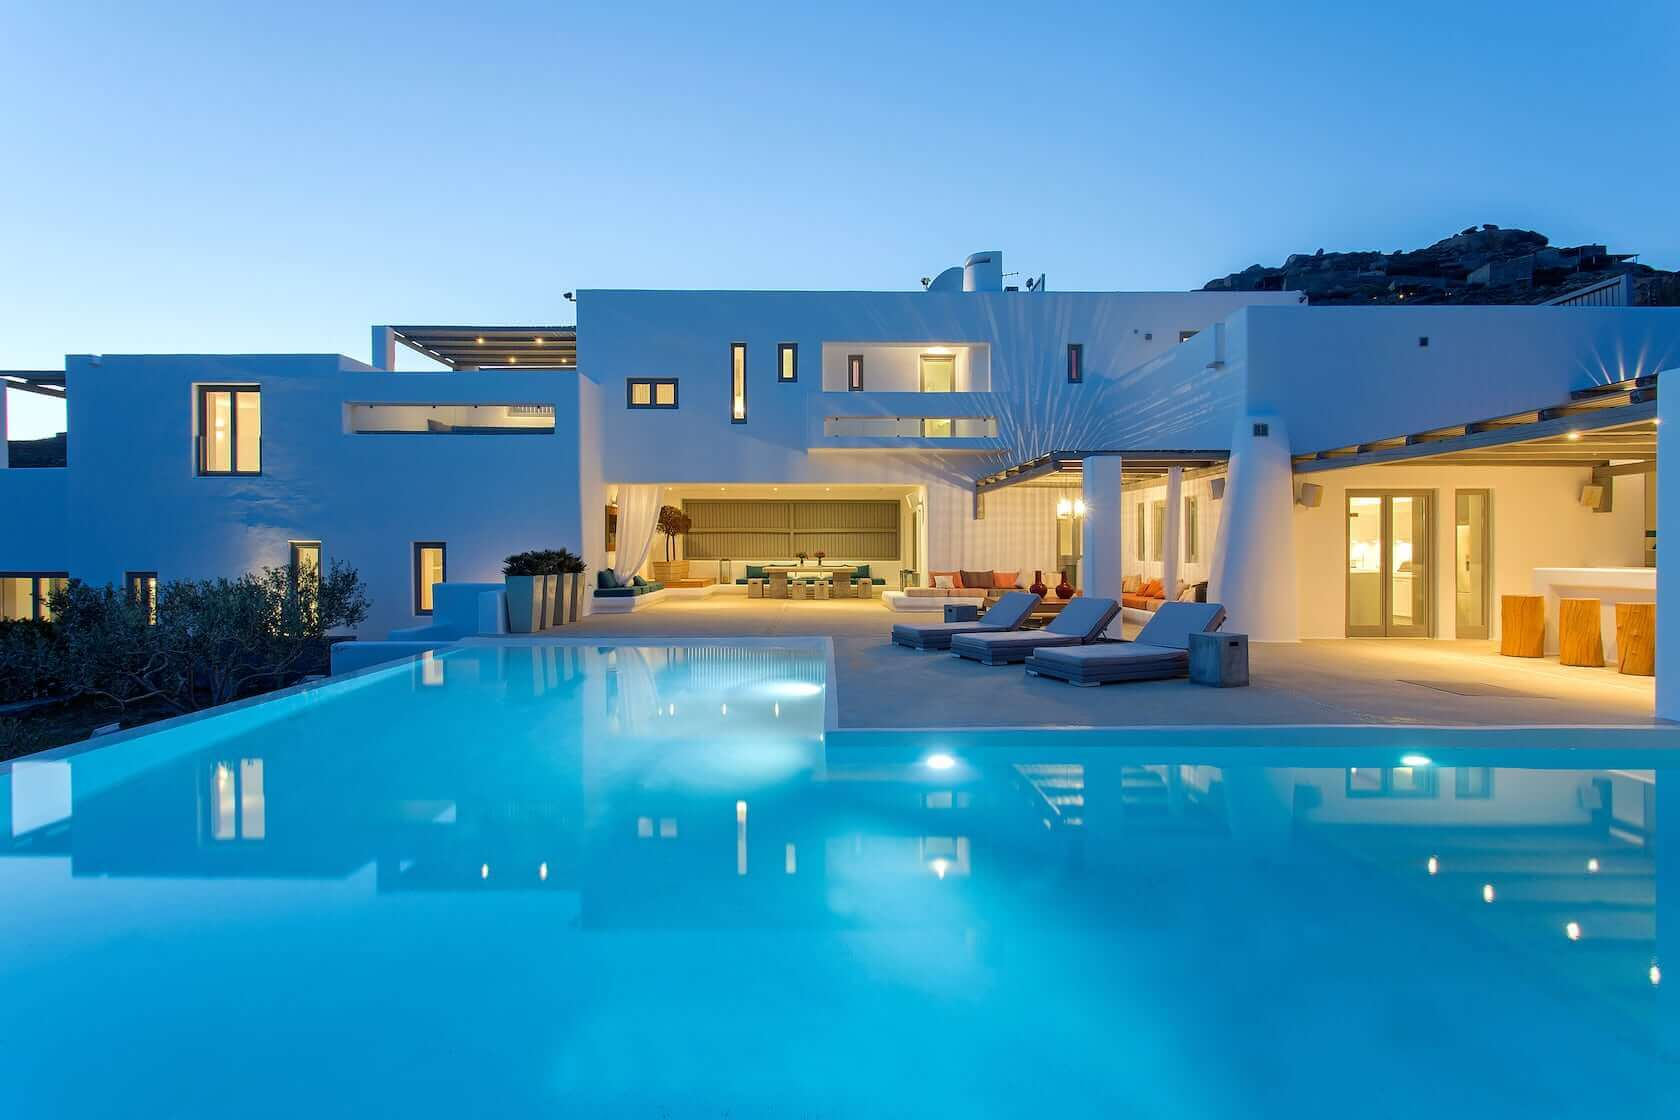 Crystal clear swimming pool in Villa Armonia in Mykonos and view of the villa's exterior.